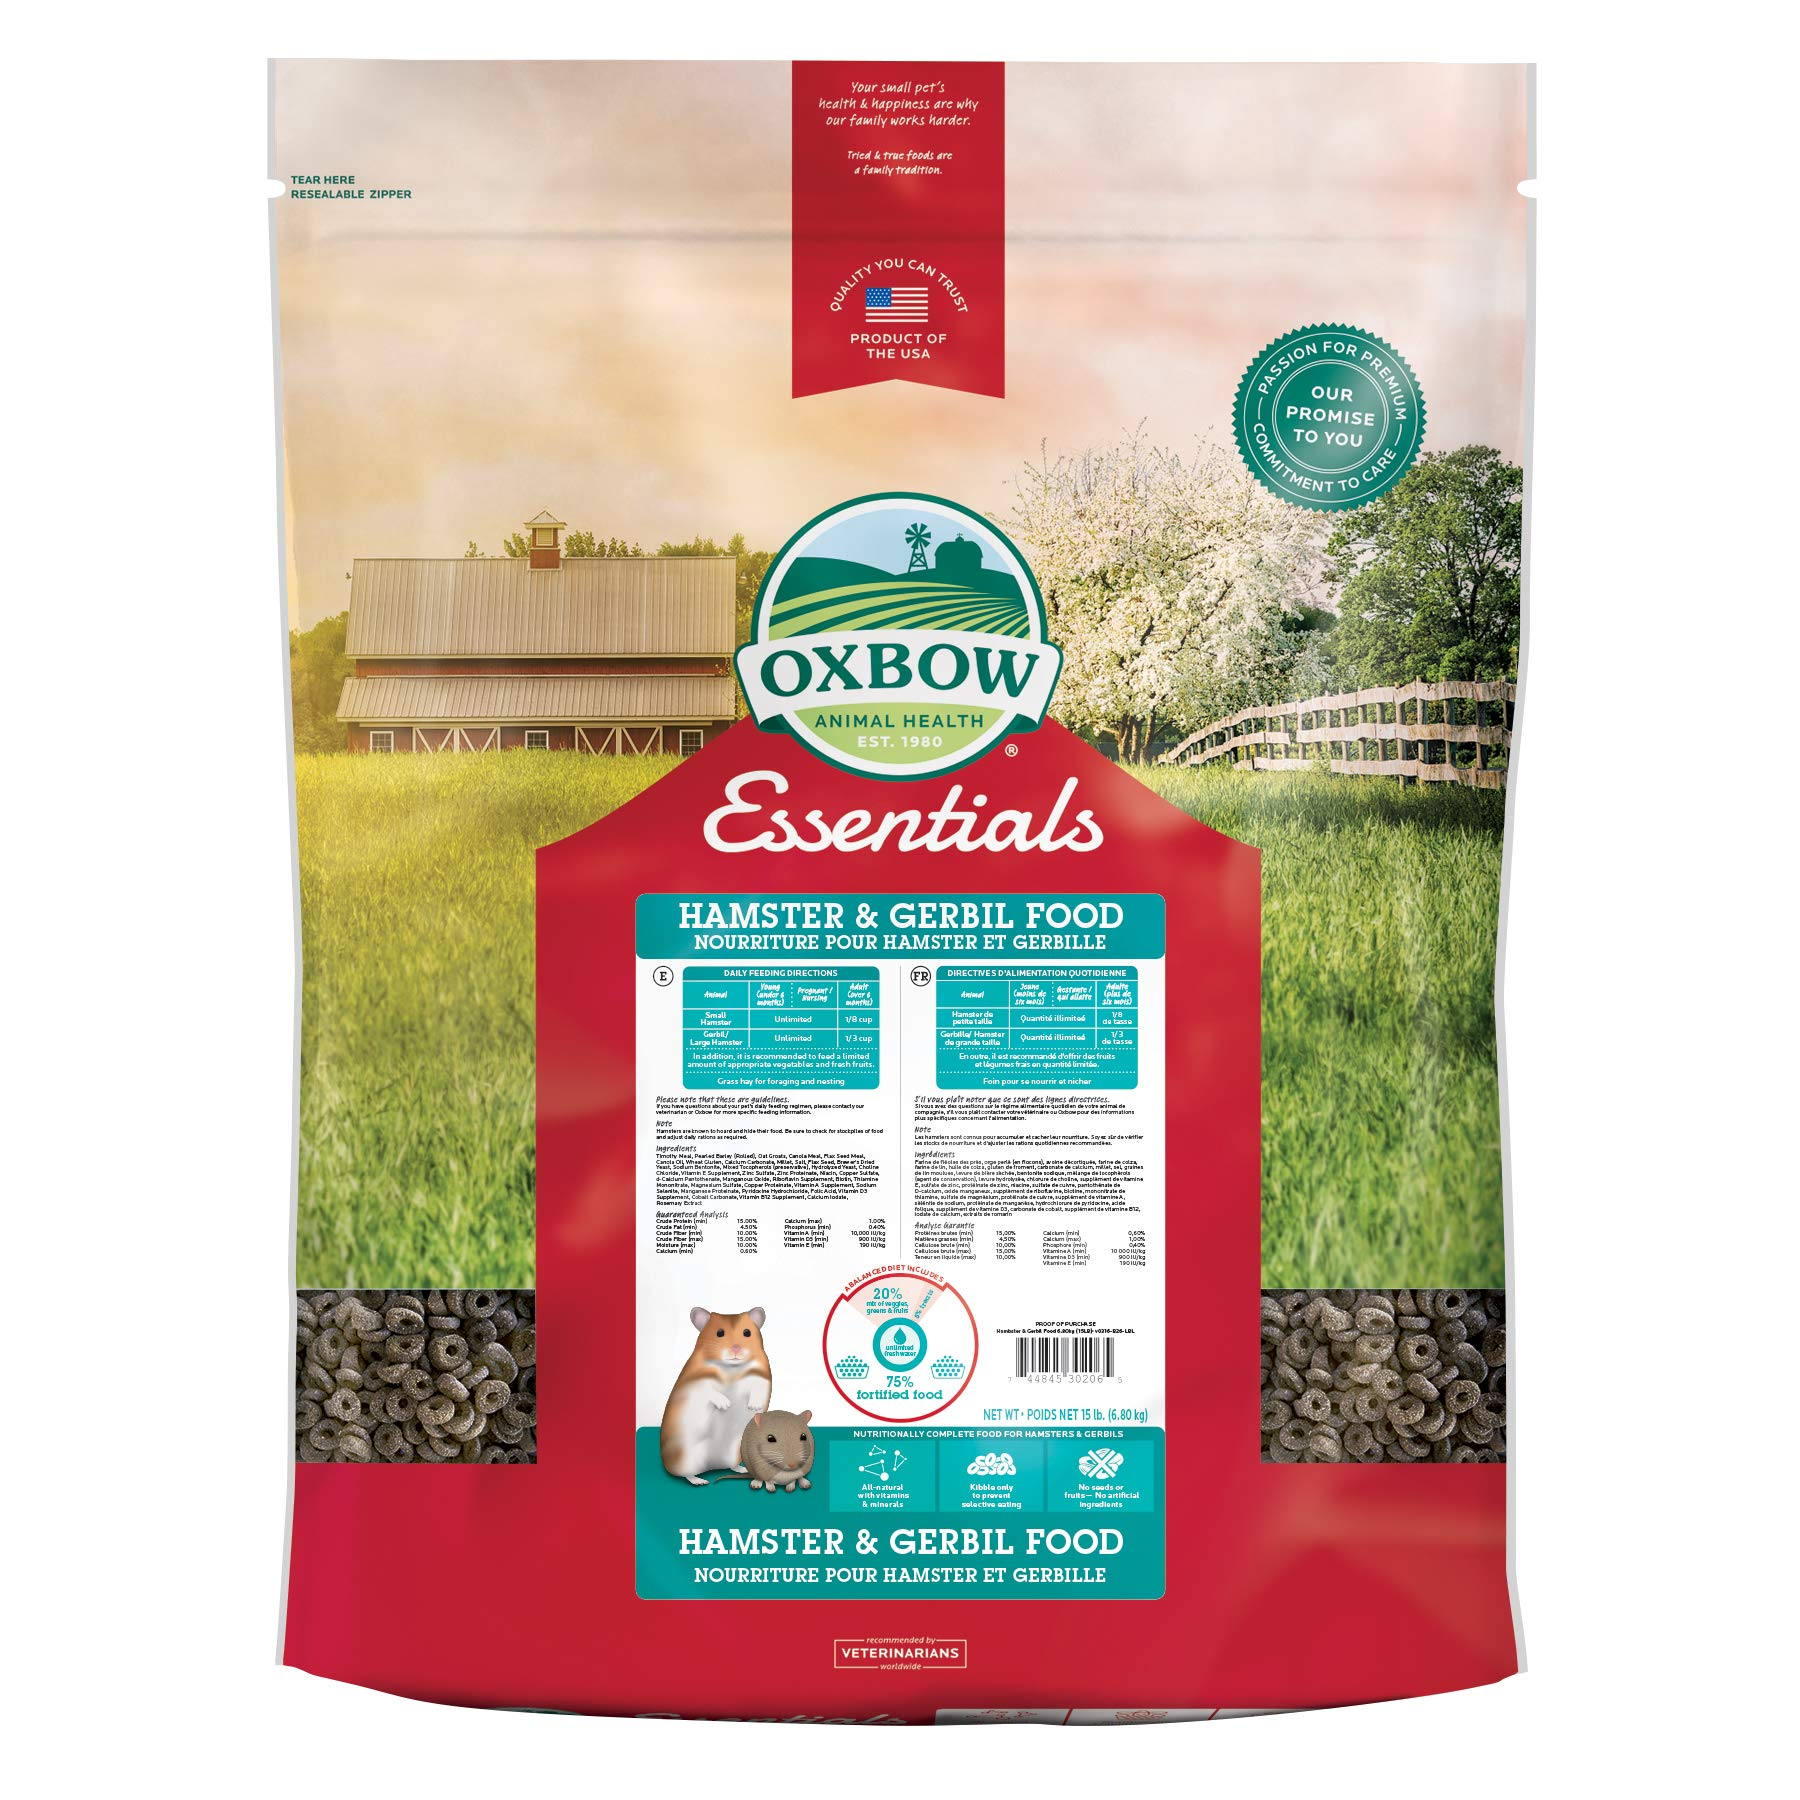 Oxbow Animal Health Healthy Handfuls Essentials Hamster/Gerbil Food, 15-Pound by Oxbow